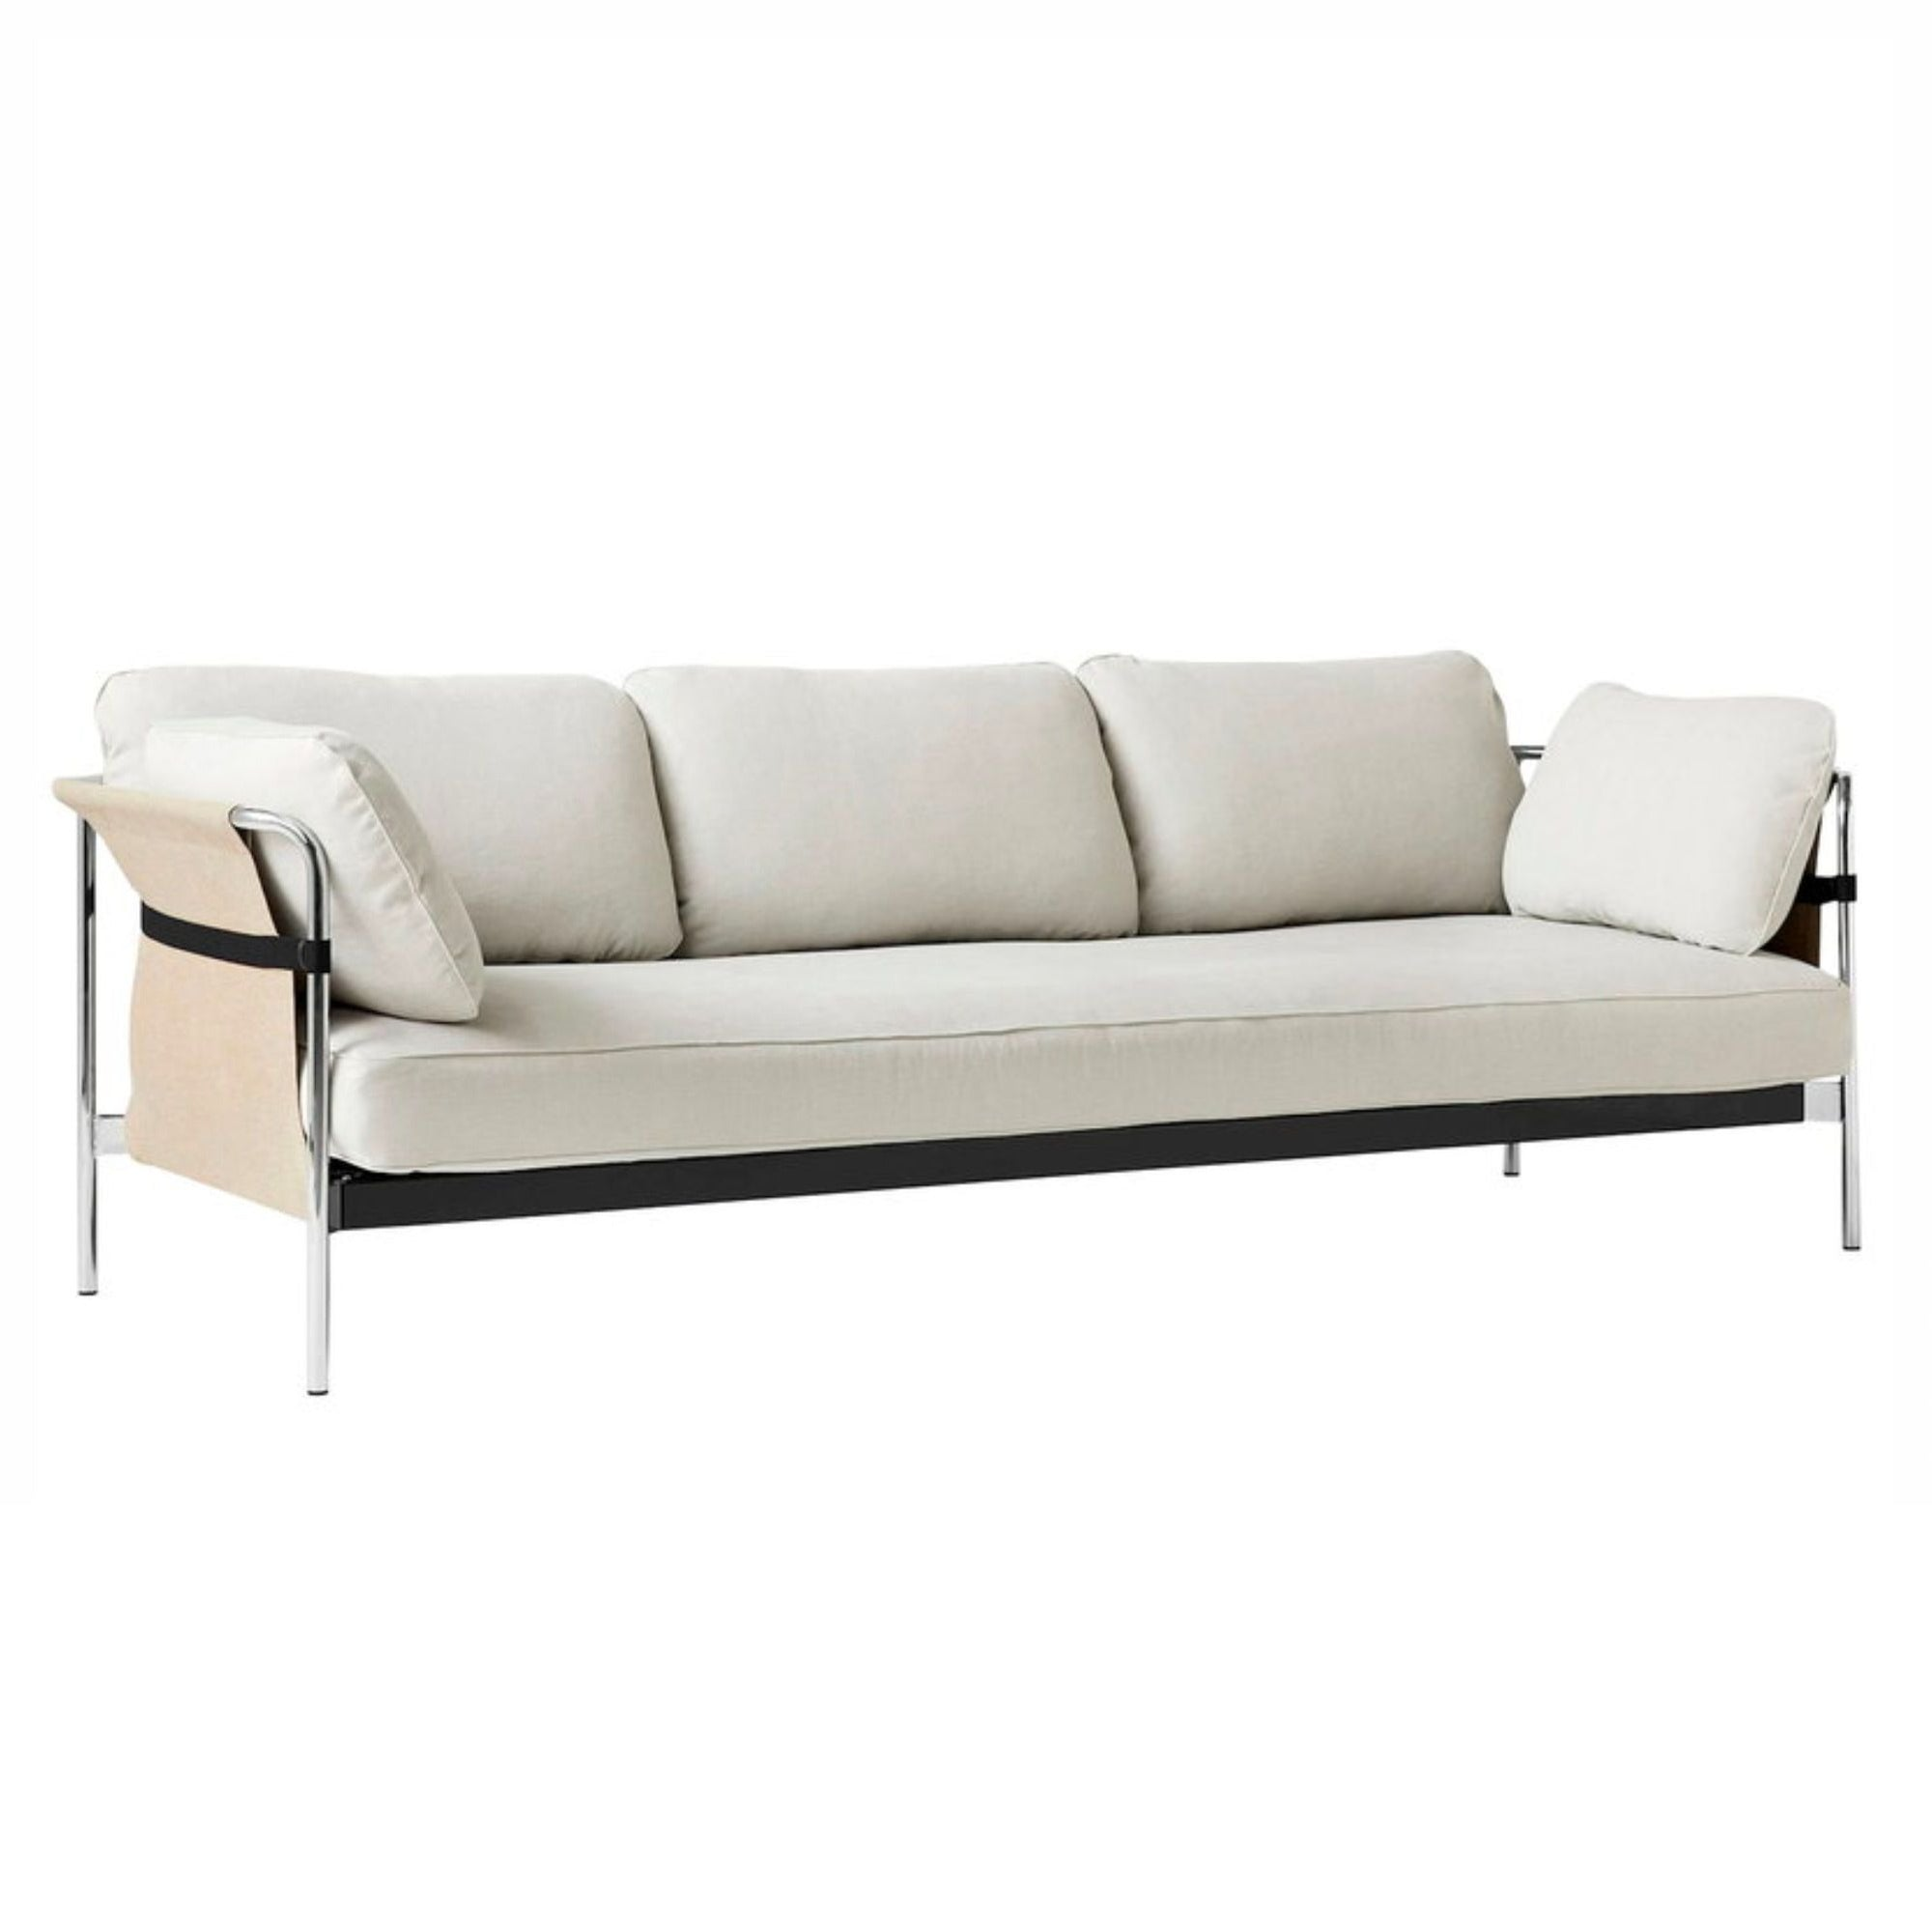 HAY Can 3-Seater Sofa 2.0, chrome - natural - linara331